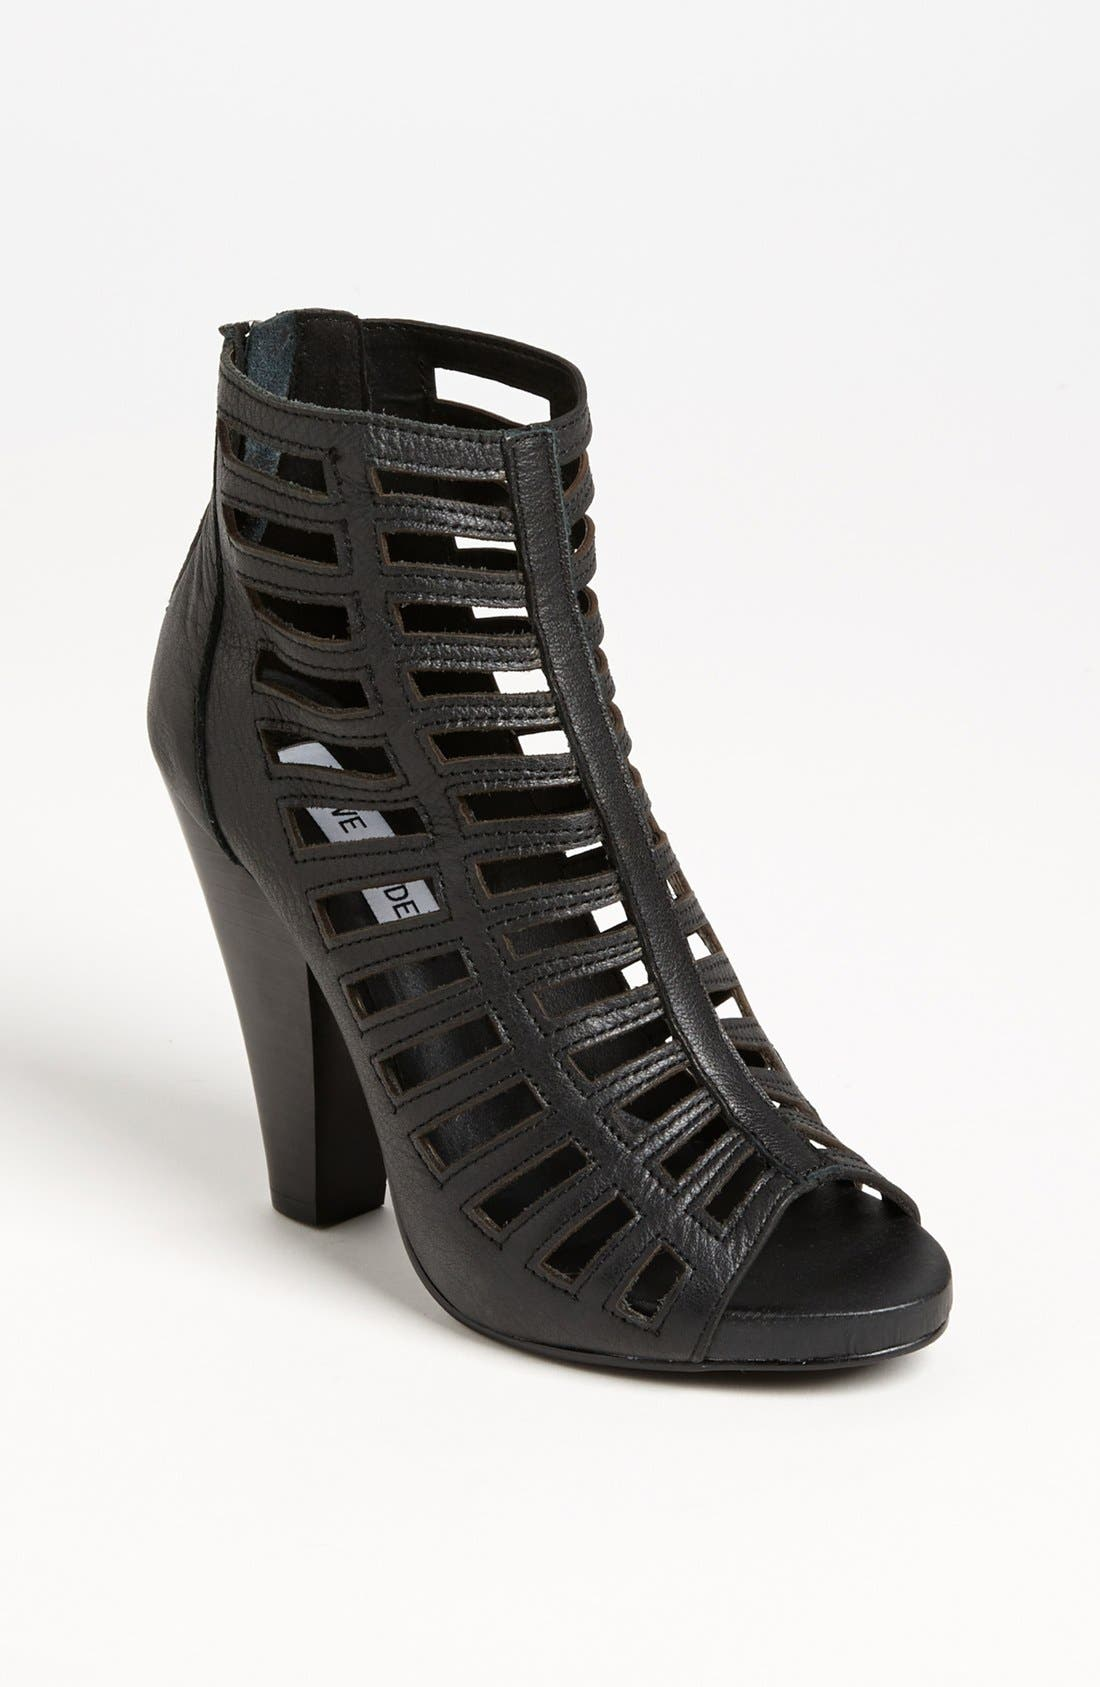 Alternate Image 1 Selected - Steve Madden 'Alexxia' Bootie